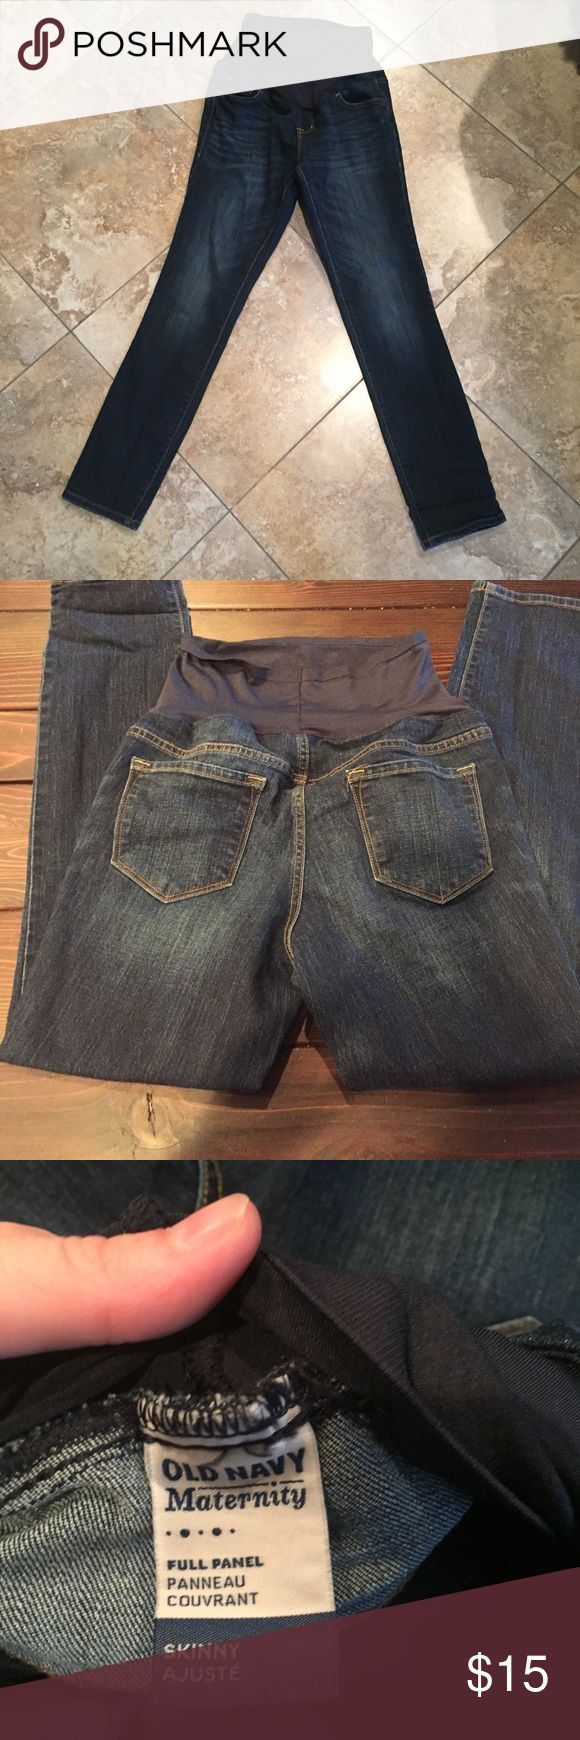 Old navy maternity jeans Old navy maternity jeans                                               🚫- No trades 🚭- Listings from a non-smoking home 📬- Fast shipping! 💌- Feel free to make an offer 💯- items as described, feel free to ask questions 🔎- Search my closet for other great listings 🛍- Happy Shopping!! Old Navy Jeans